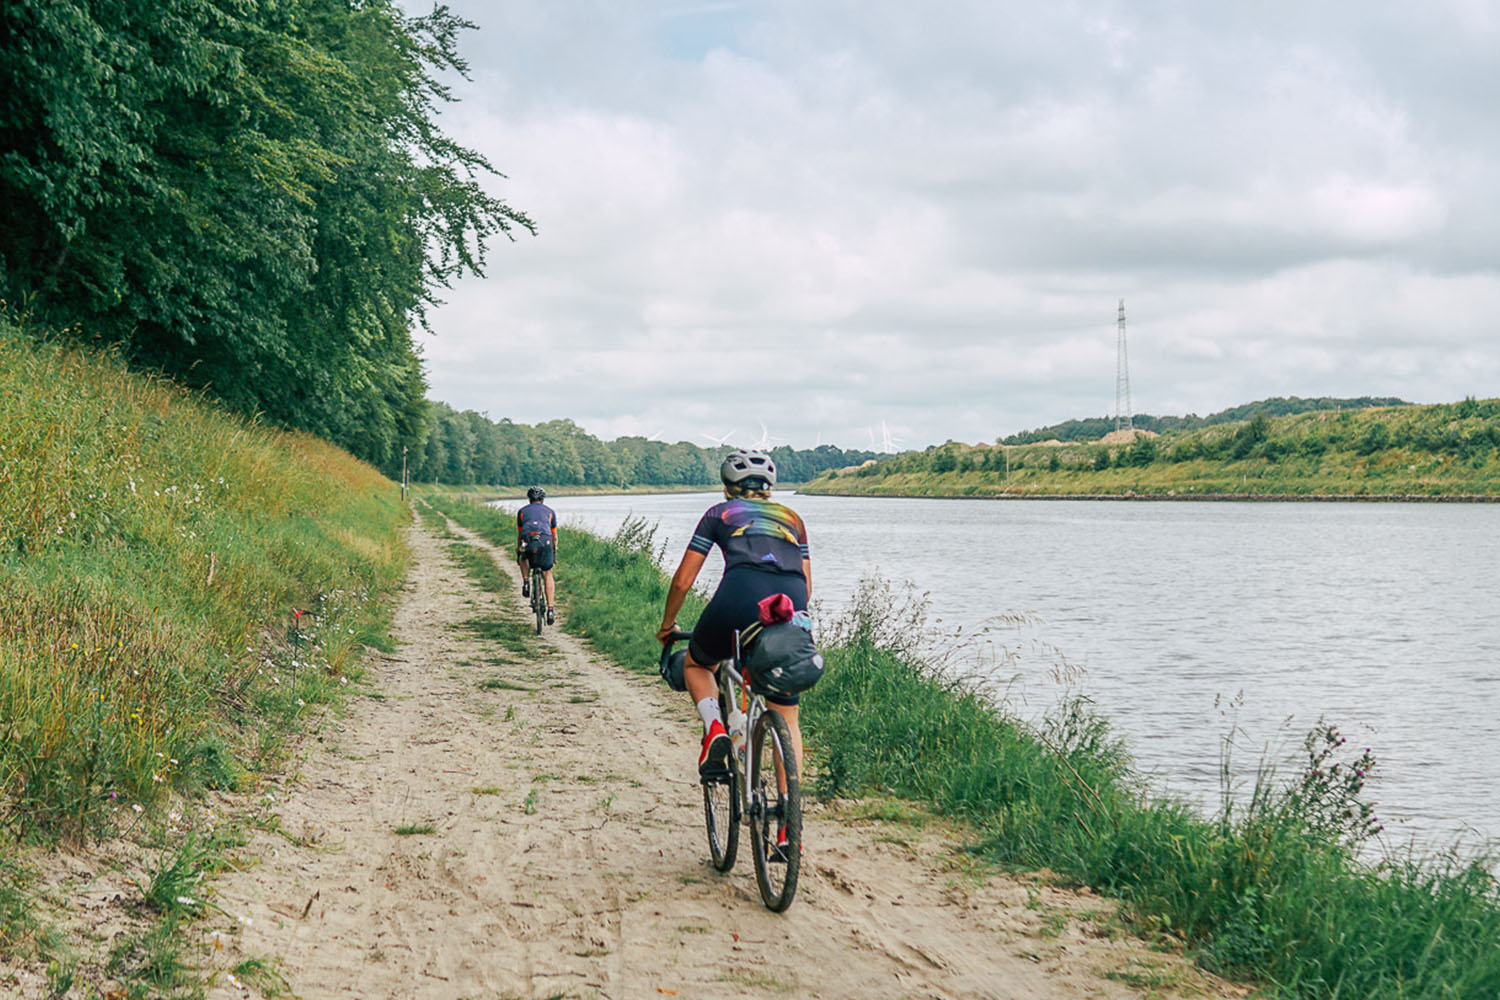 holy_gravel_2020_bikepacking_radelmaedchen-1500x1000_158